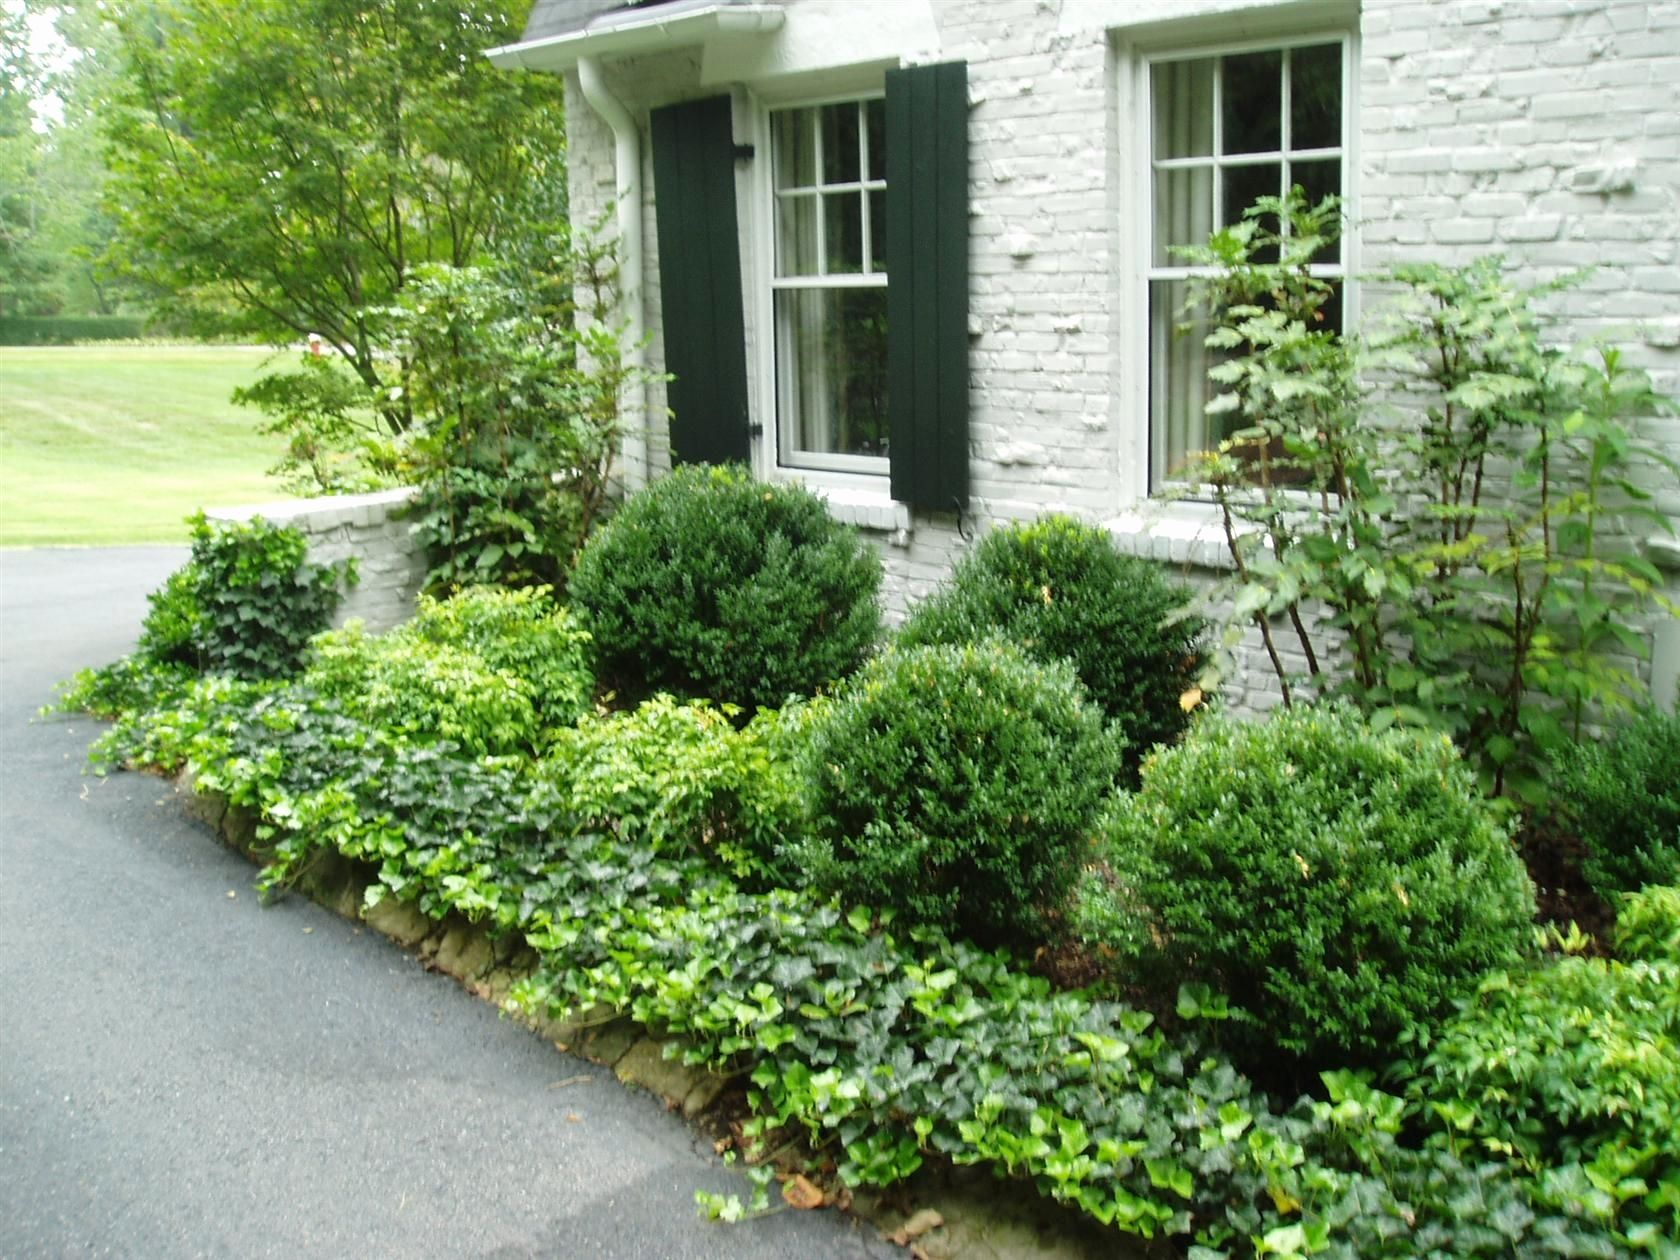 Landscaping Next To House Foundation Awesome This Looks Nice And Seems Way Low Maintenance Landscaping Front Yard Traditional Landscape Front Yard Landscaping